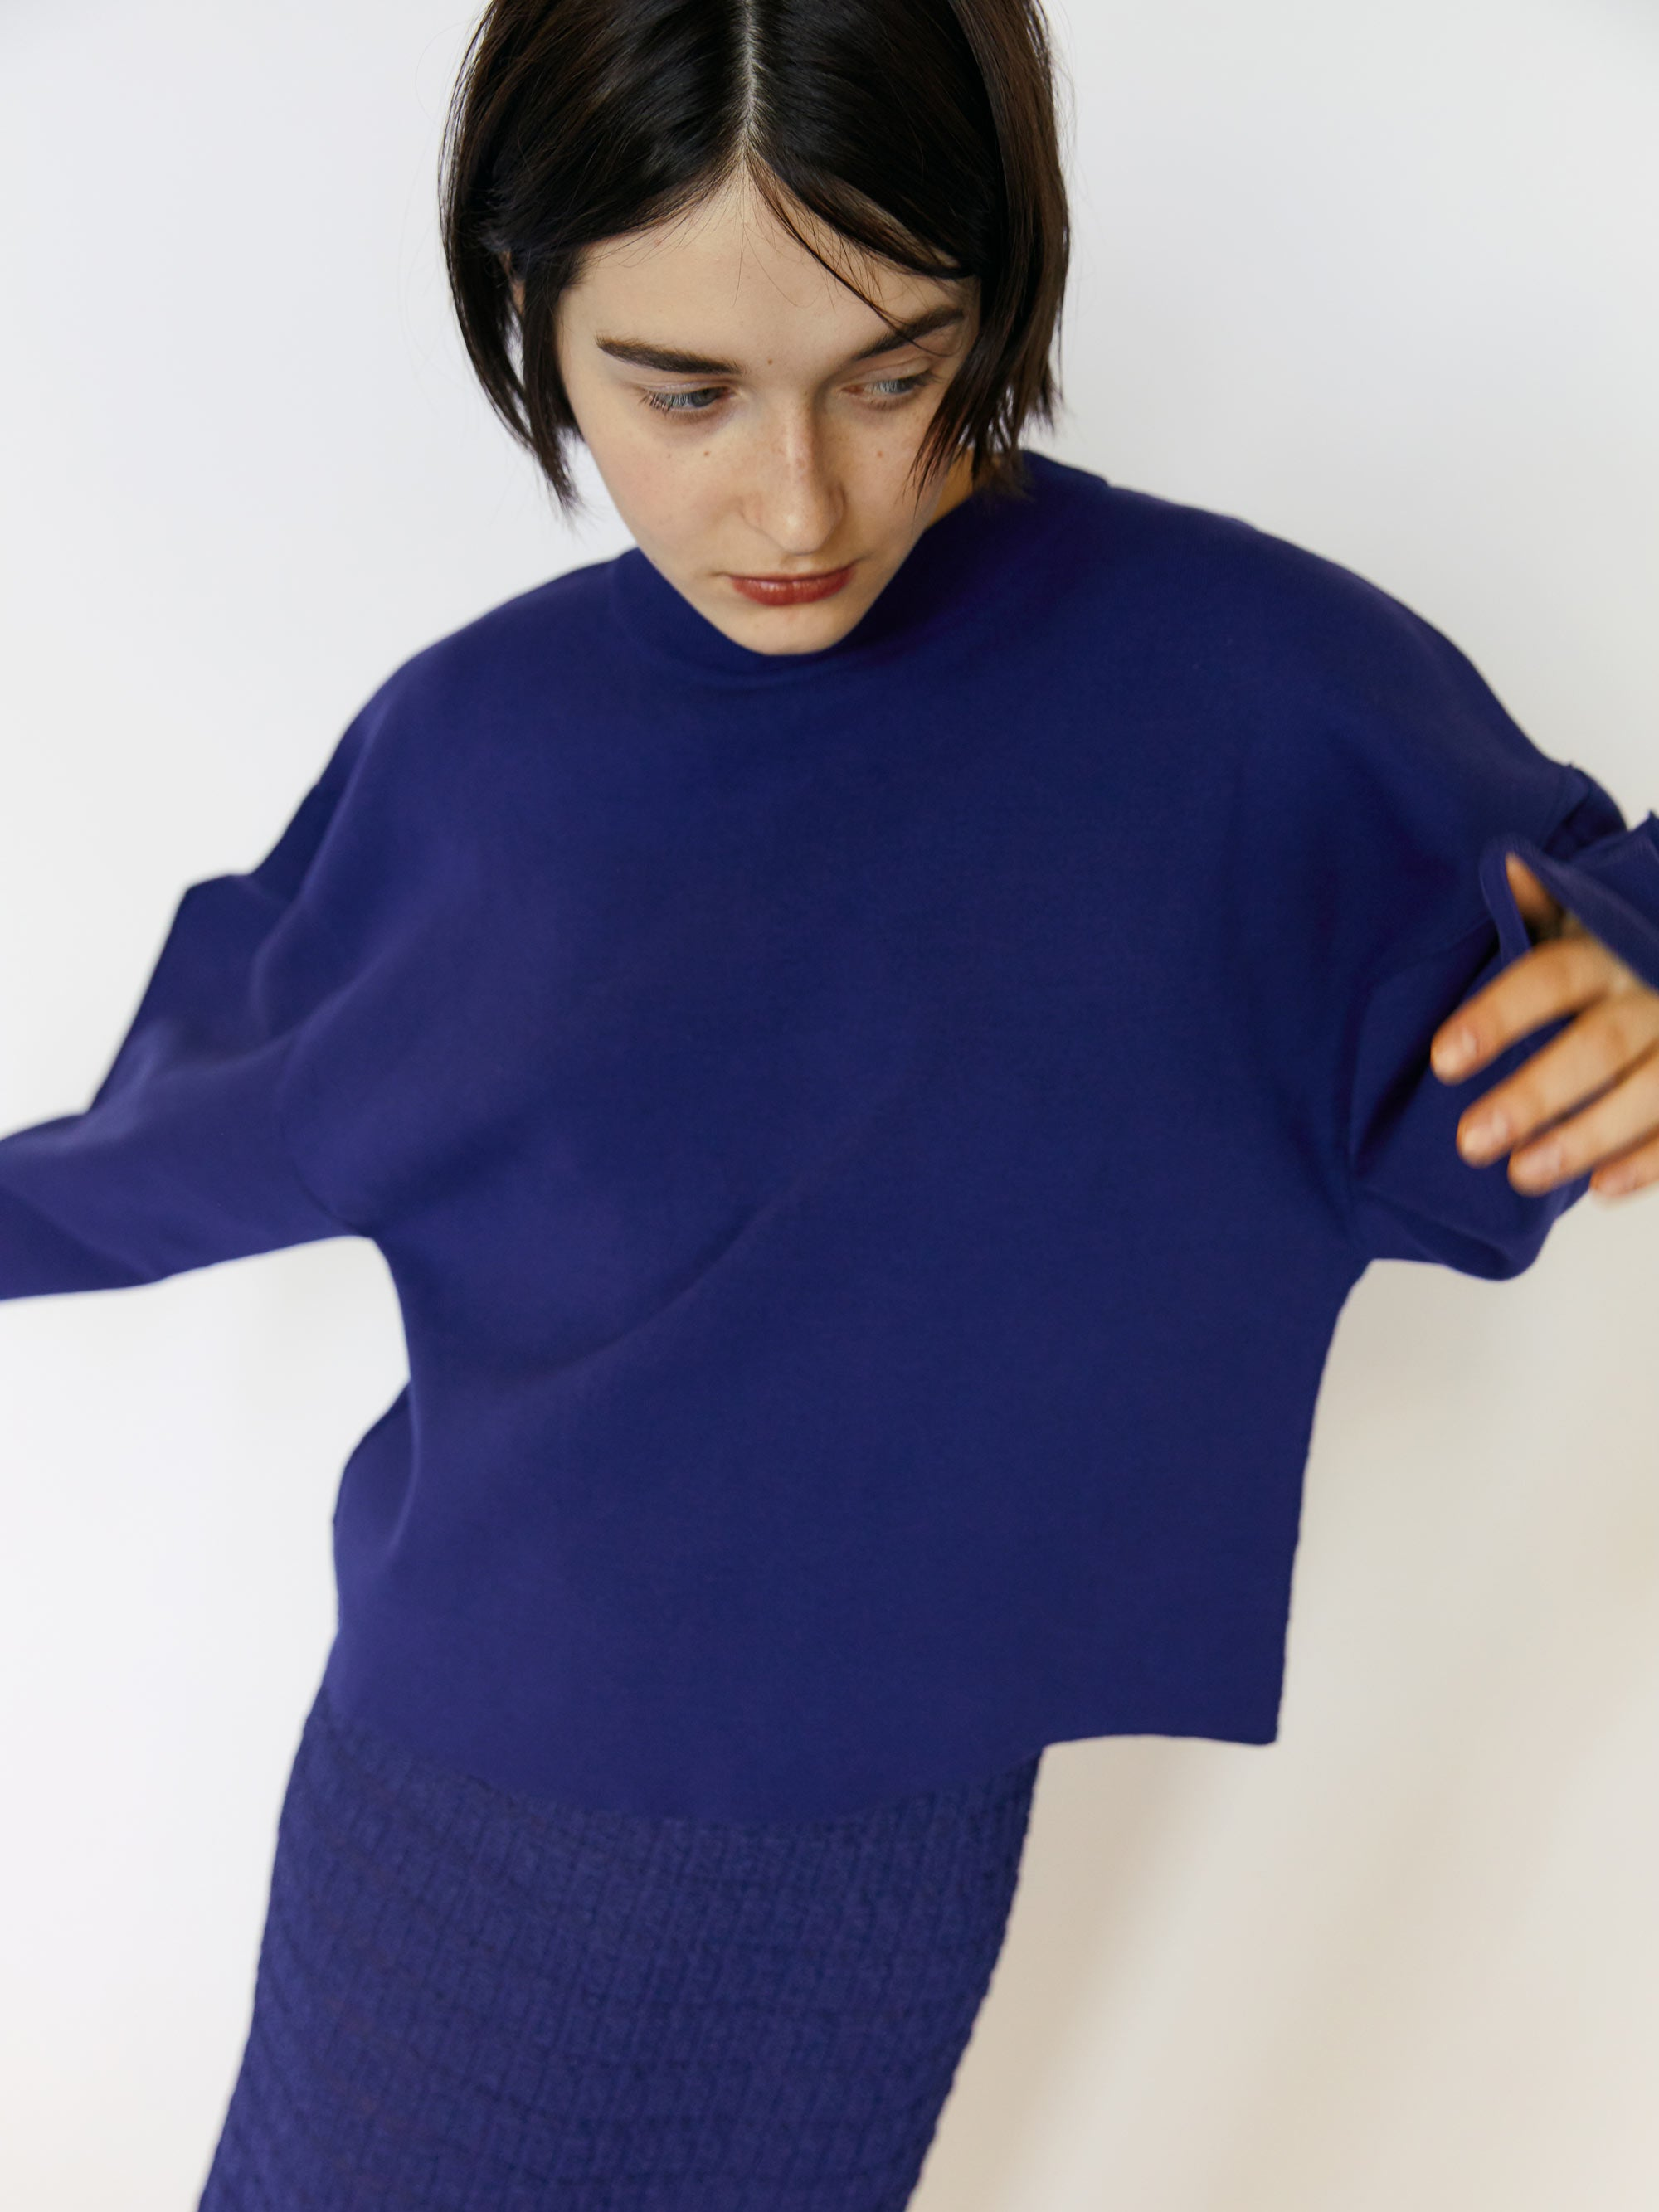 Éclipse sweater